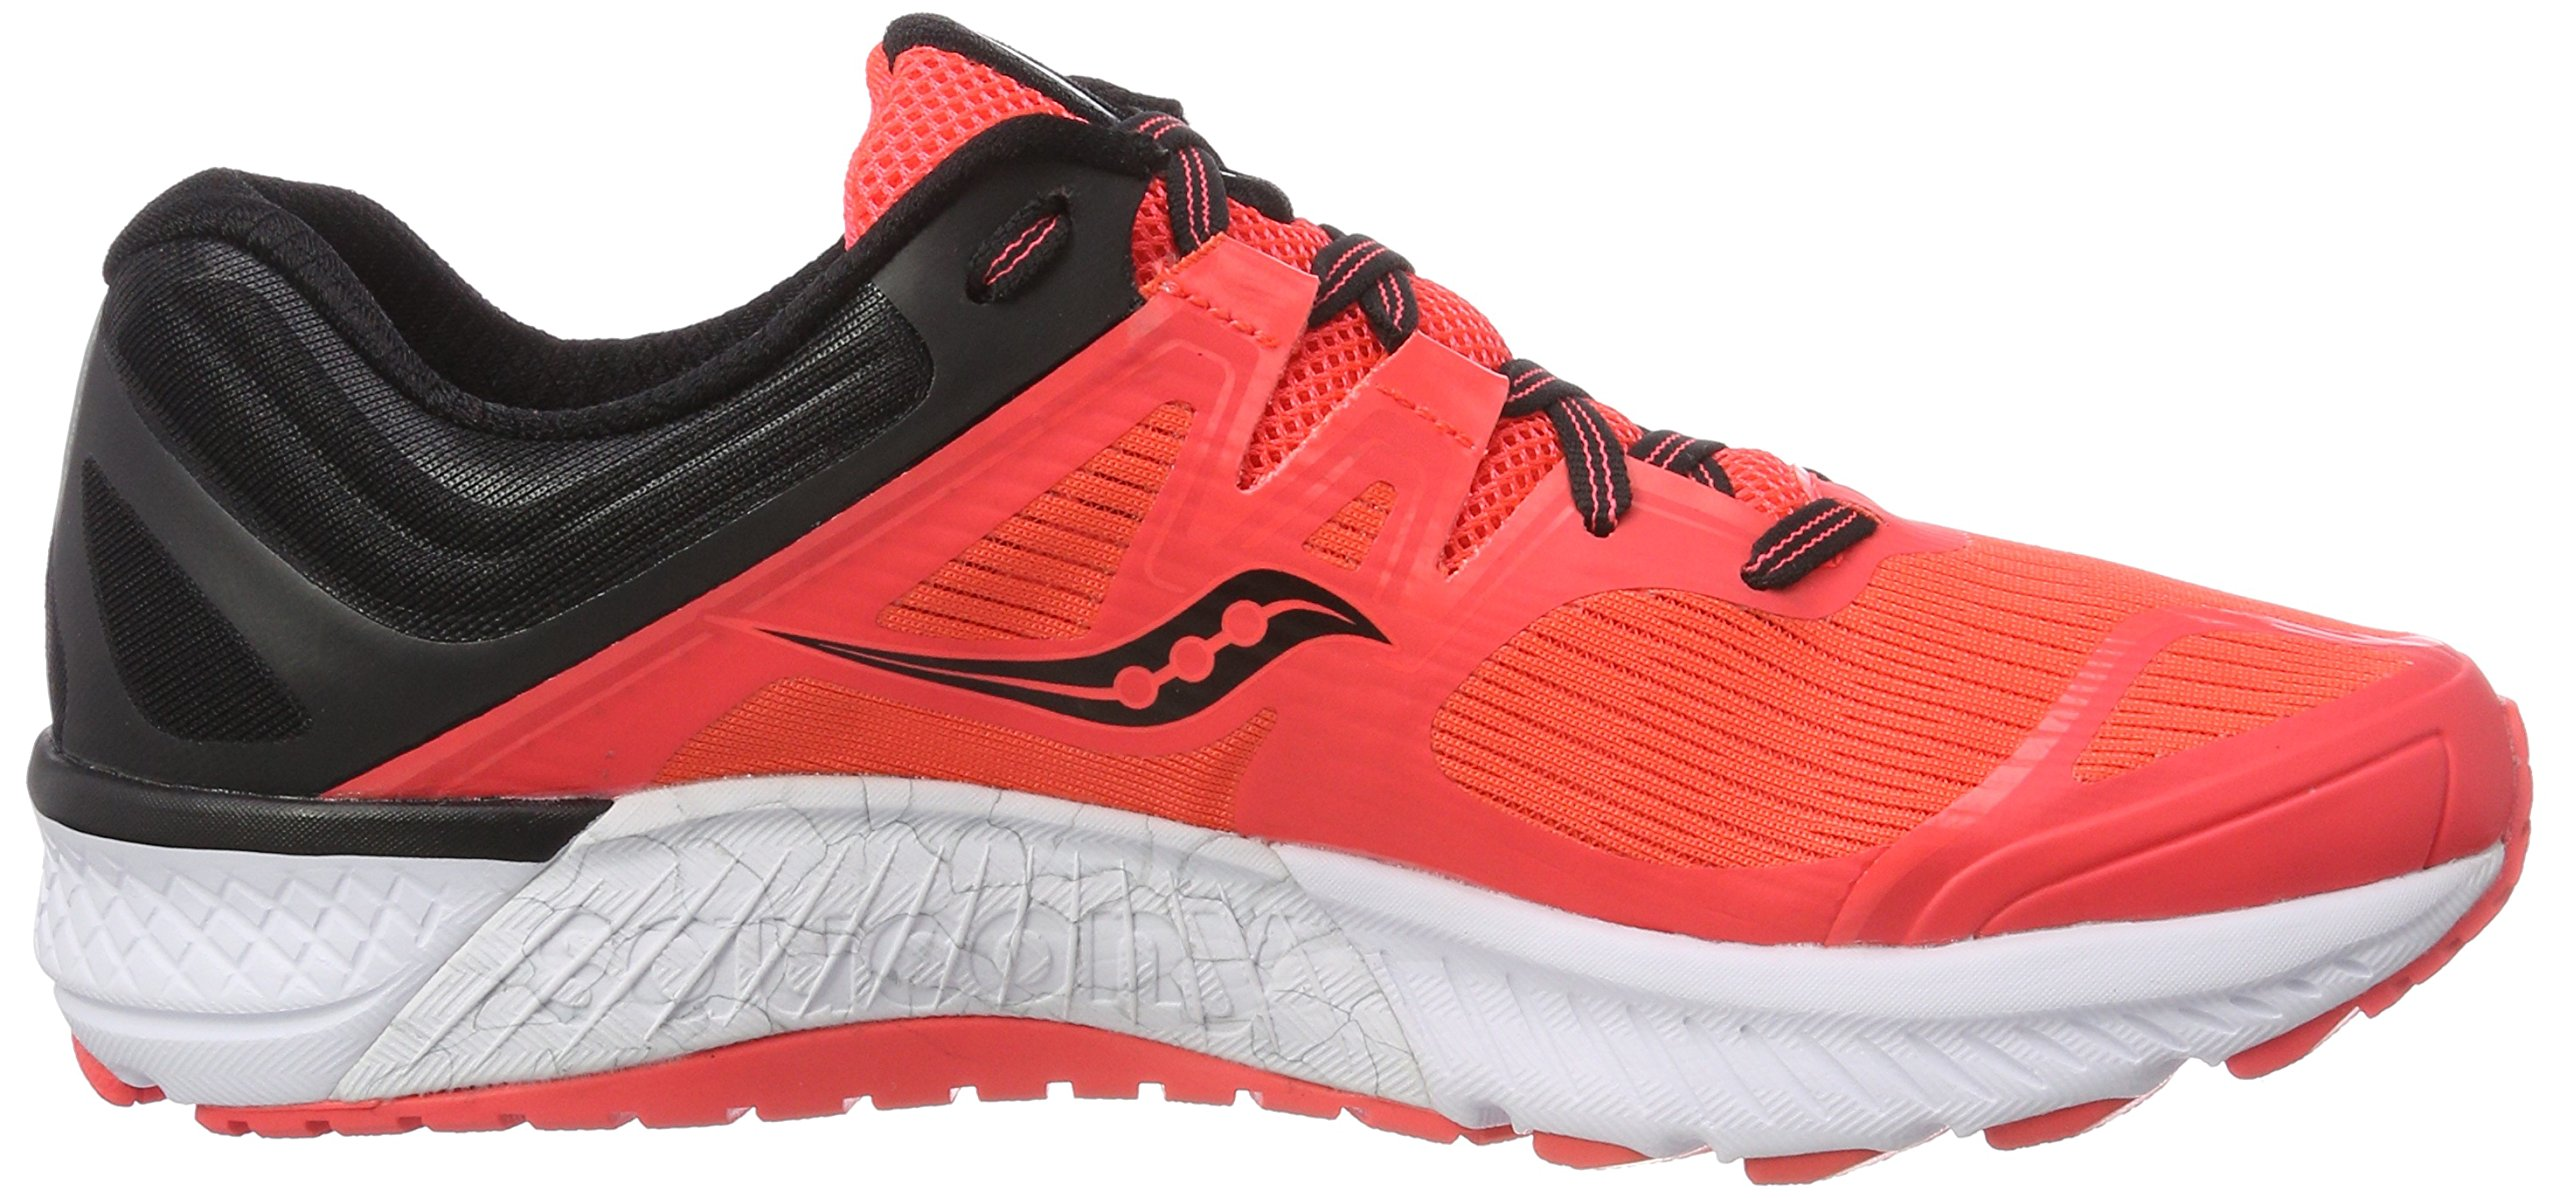 81685V5sJVL - Saucony Women's Guide Iso Competition Running Shoes